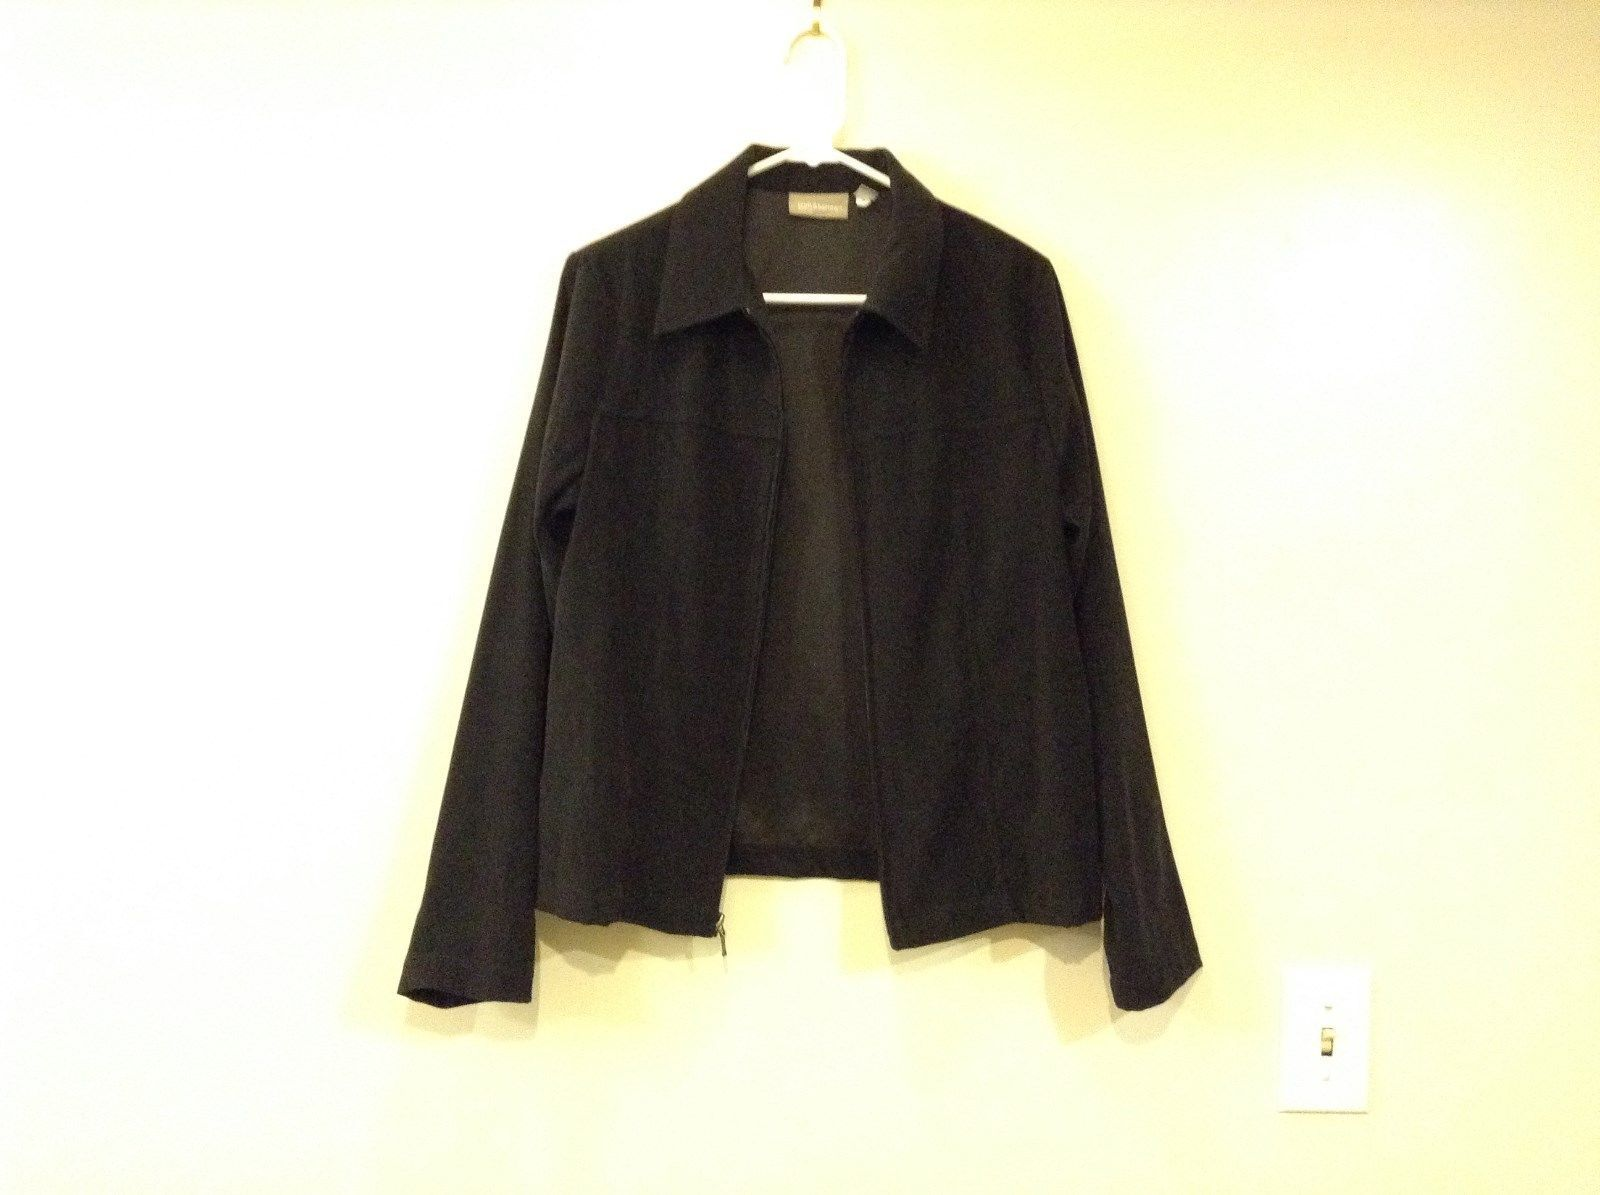 Unlined Black Jacket Croft and Barrow Stretch Front Zipper Closure Size Medium